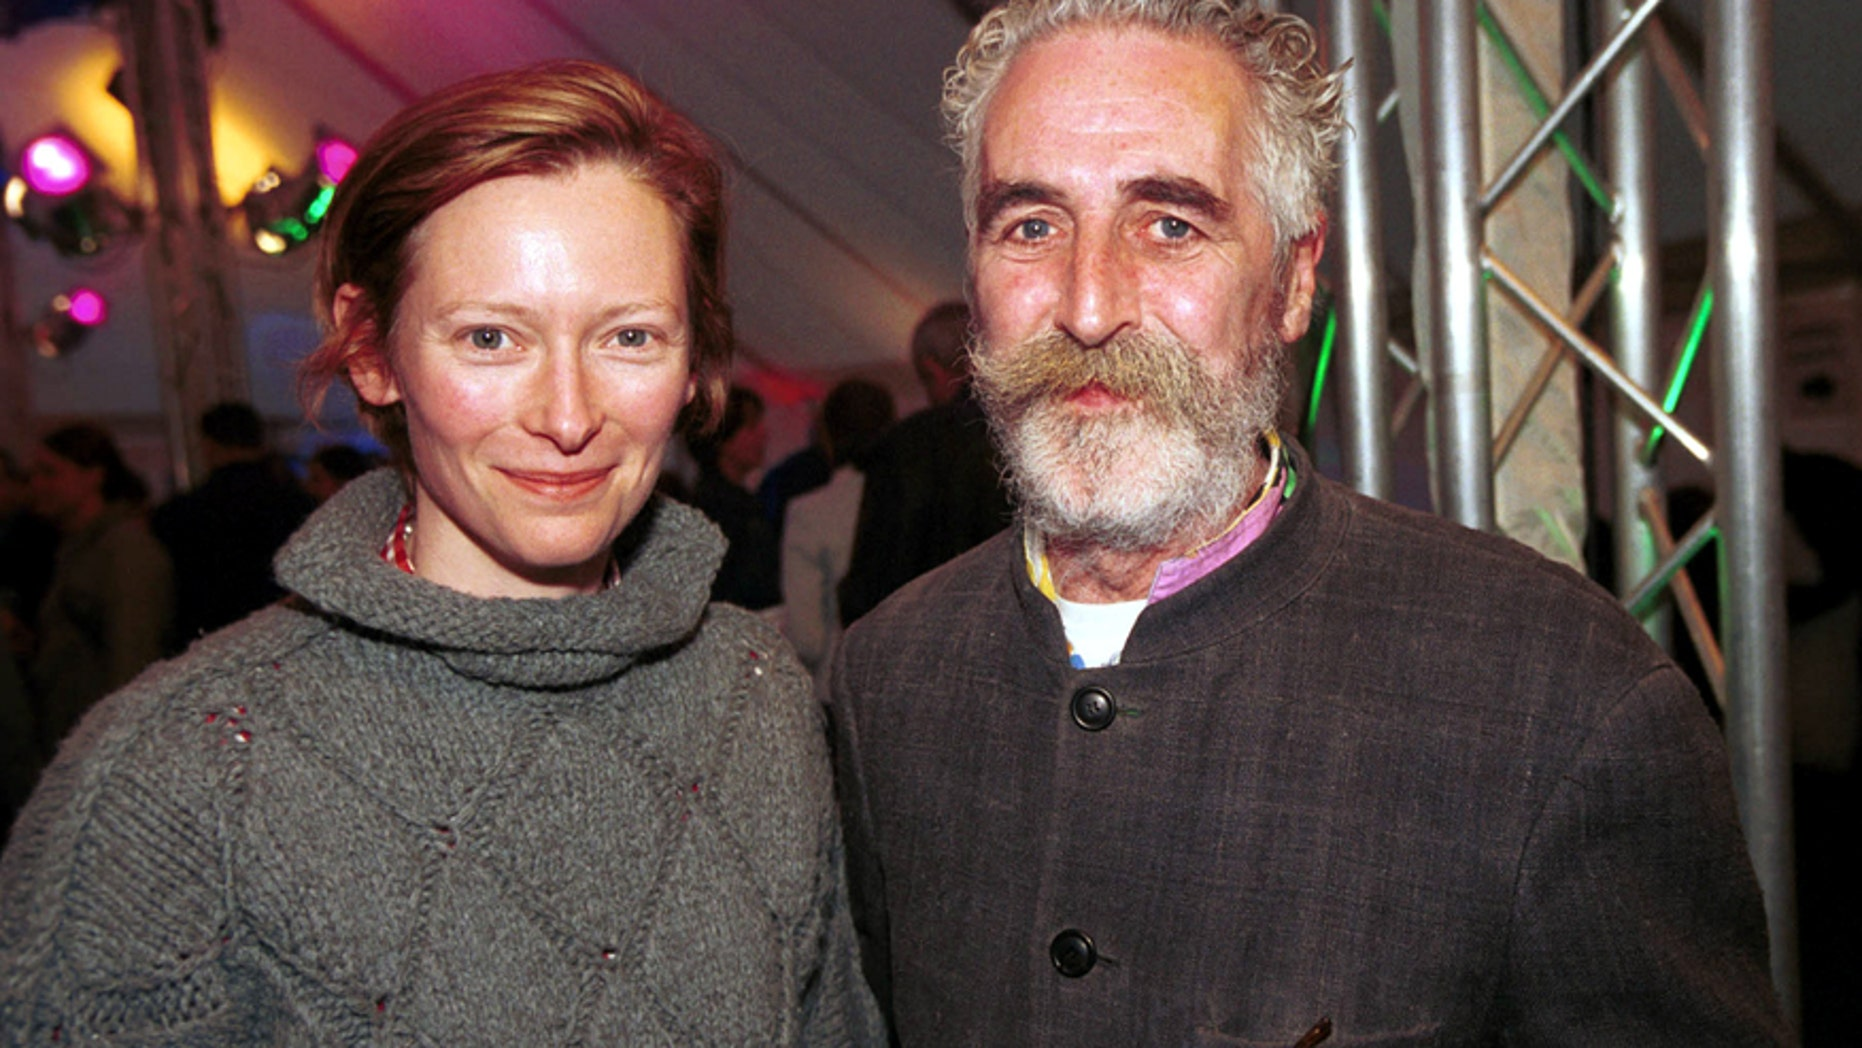 Actress Tilda Swinton and partner artist John Byrne attend the book launch for the 100th Canongate Classic at the National Gallery on April 27, 2004 in Edinburgh, Scotland.